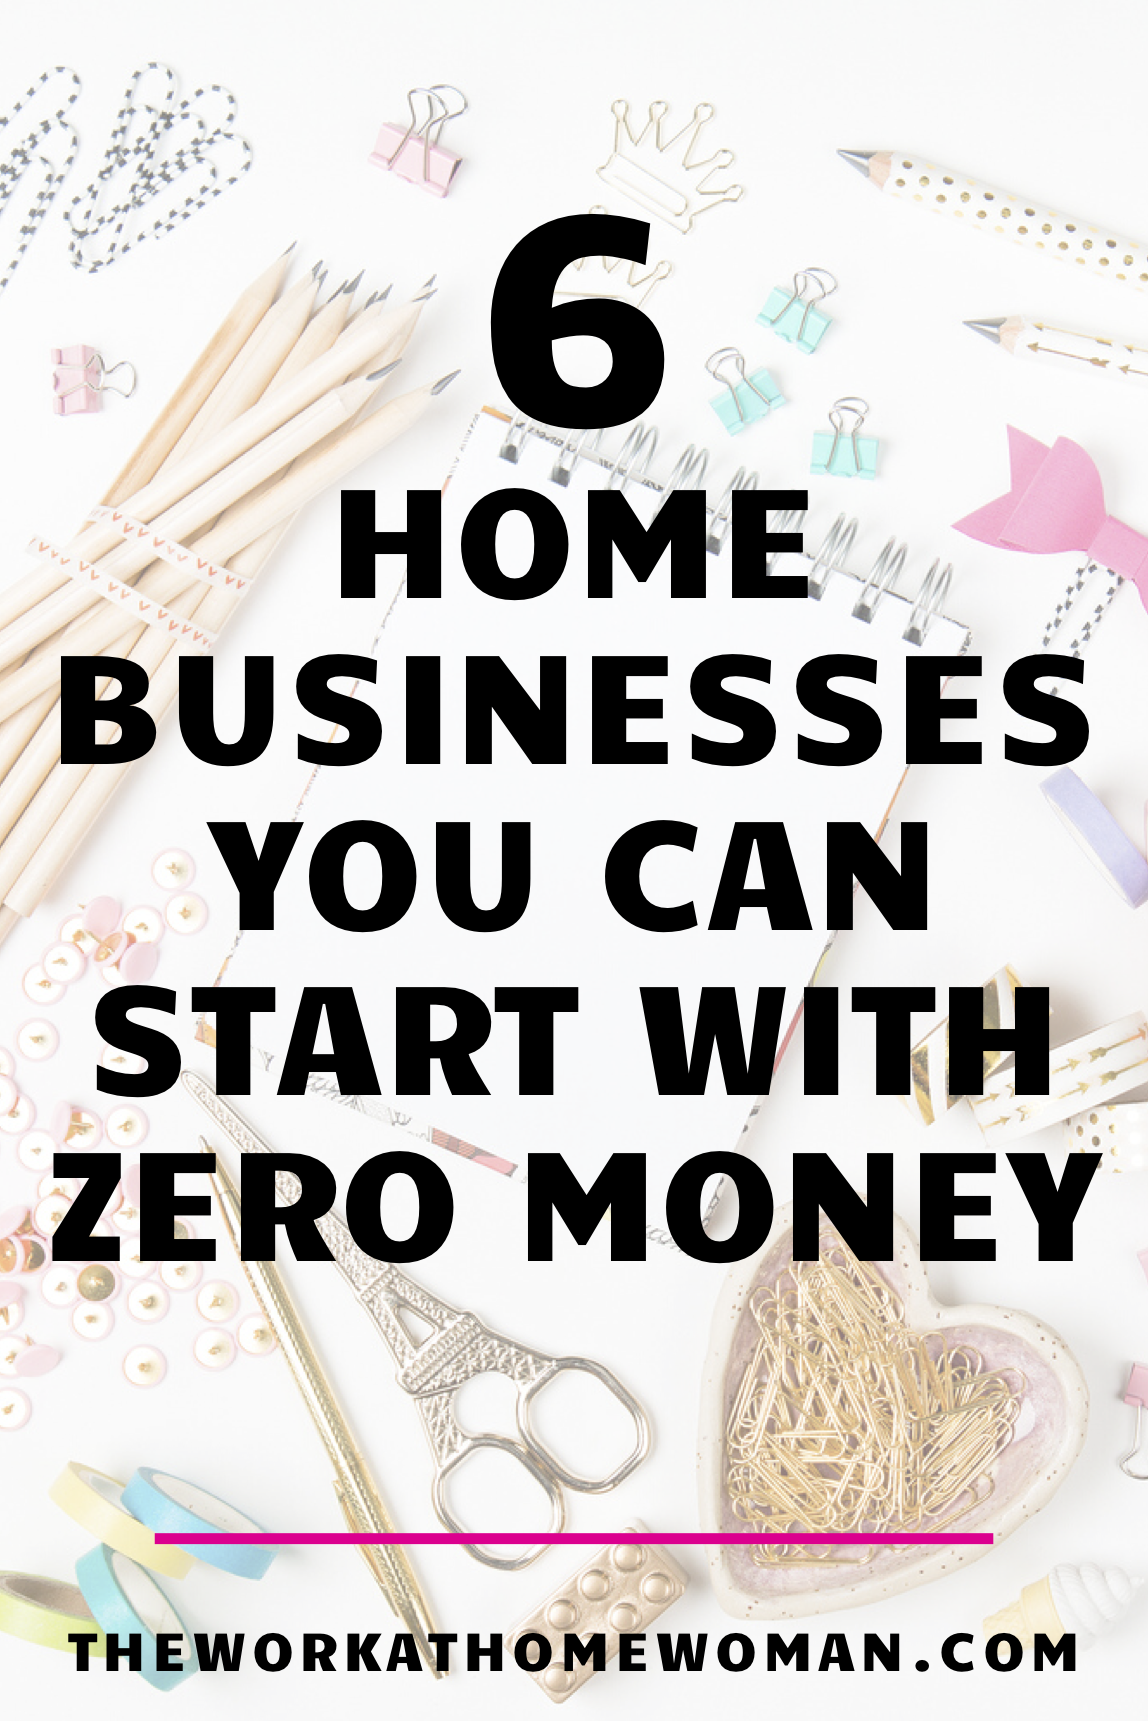 Do you want to start a business, but you don't have any funds? No problem! There are actually quite a few options for individuals who want to run their own home business without any startup fees. Check out these 6 ideas to start making money from home. #workfromhome #business #nofees #free #internet #online #homebusiness